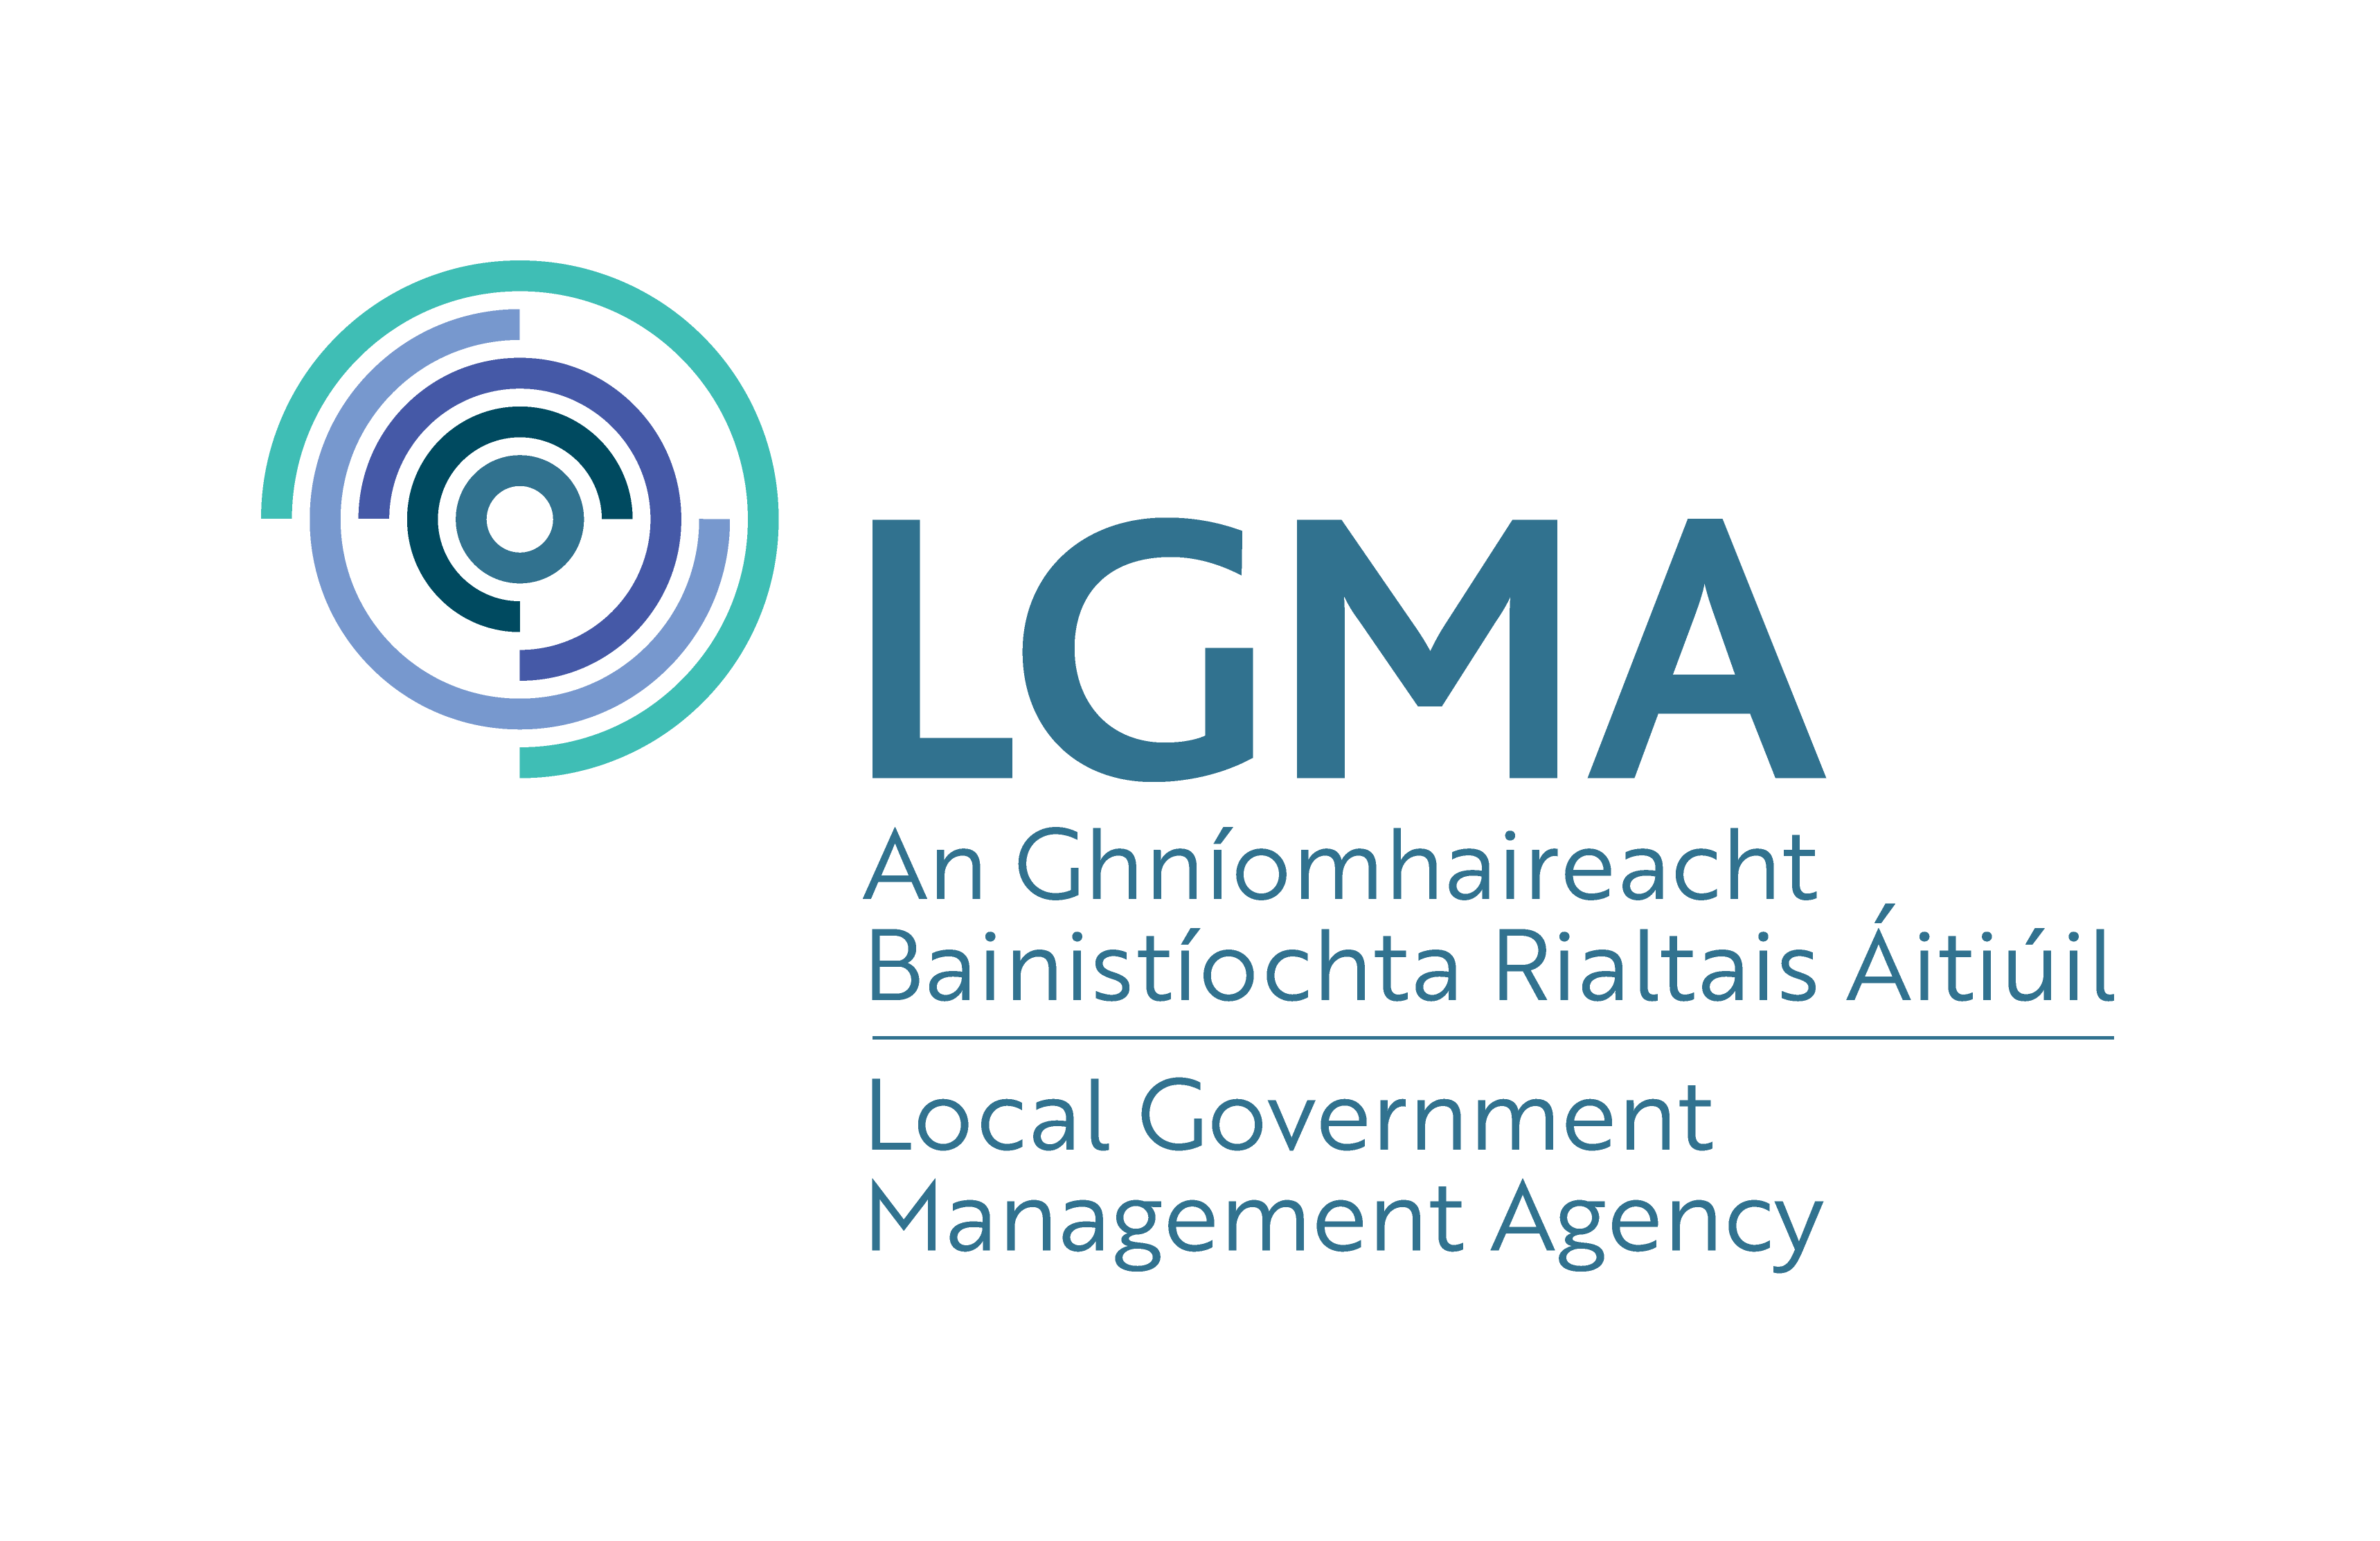 local-government-management-agency